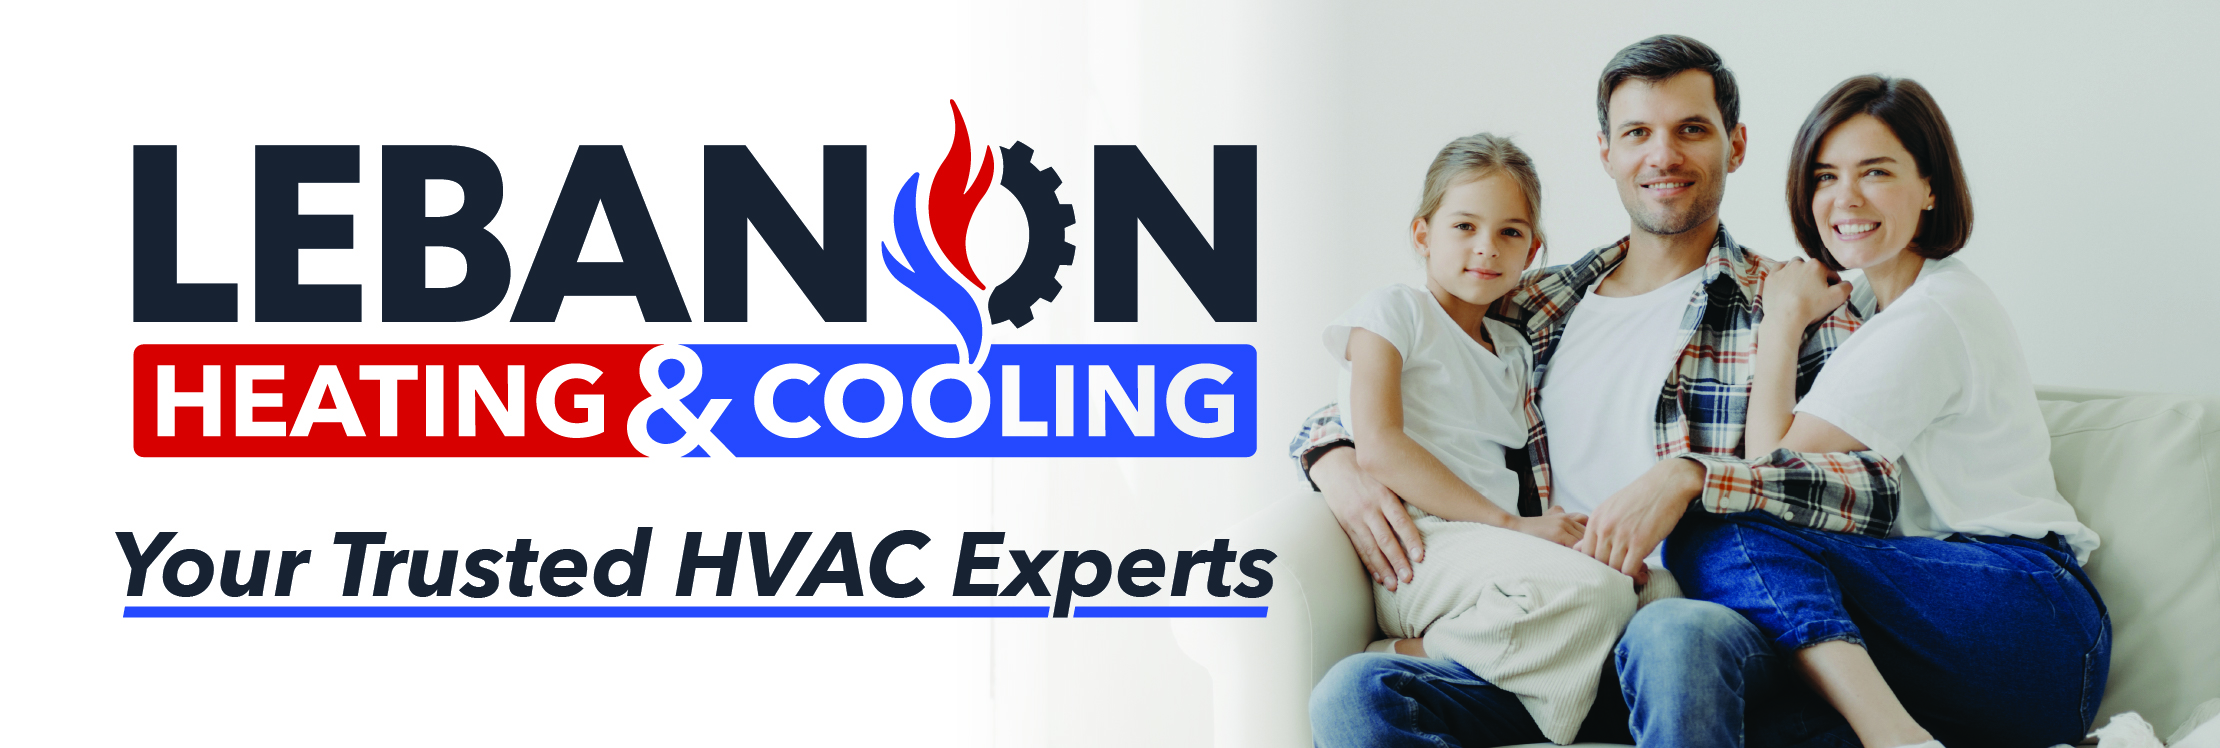 Lebanon Heating & Cooling Reviews, Ratings | Heating & Air Conditioning/HVAC near 212 North Broadway Office #7 , Lebanon OH